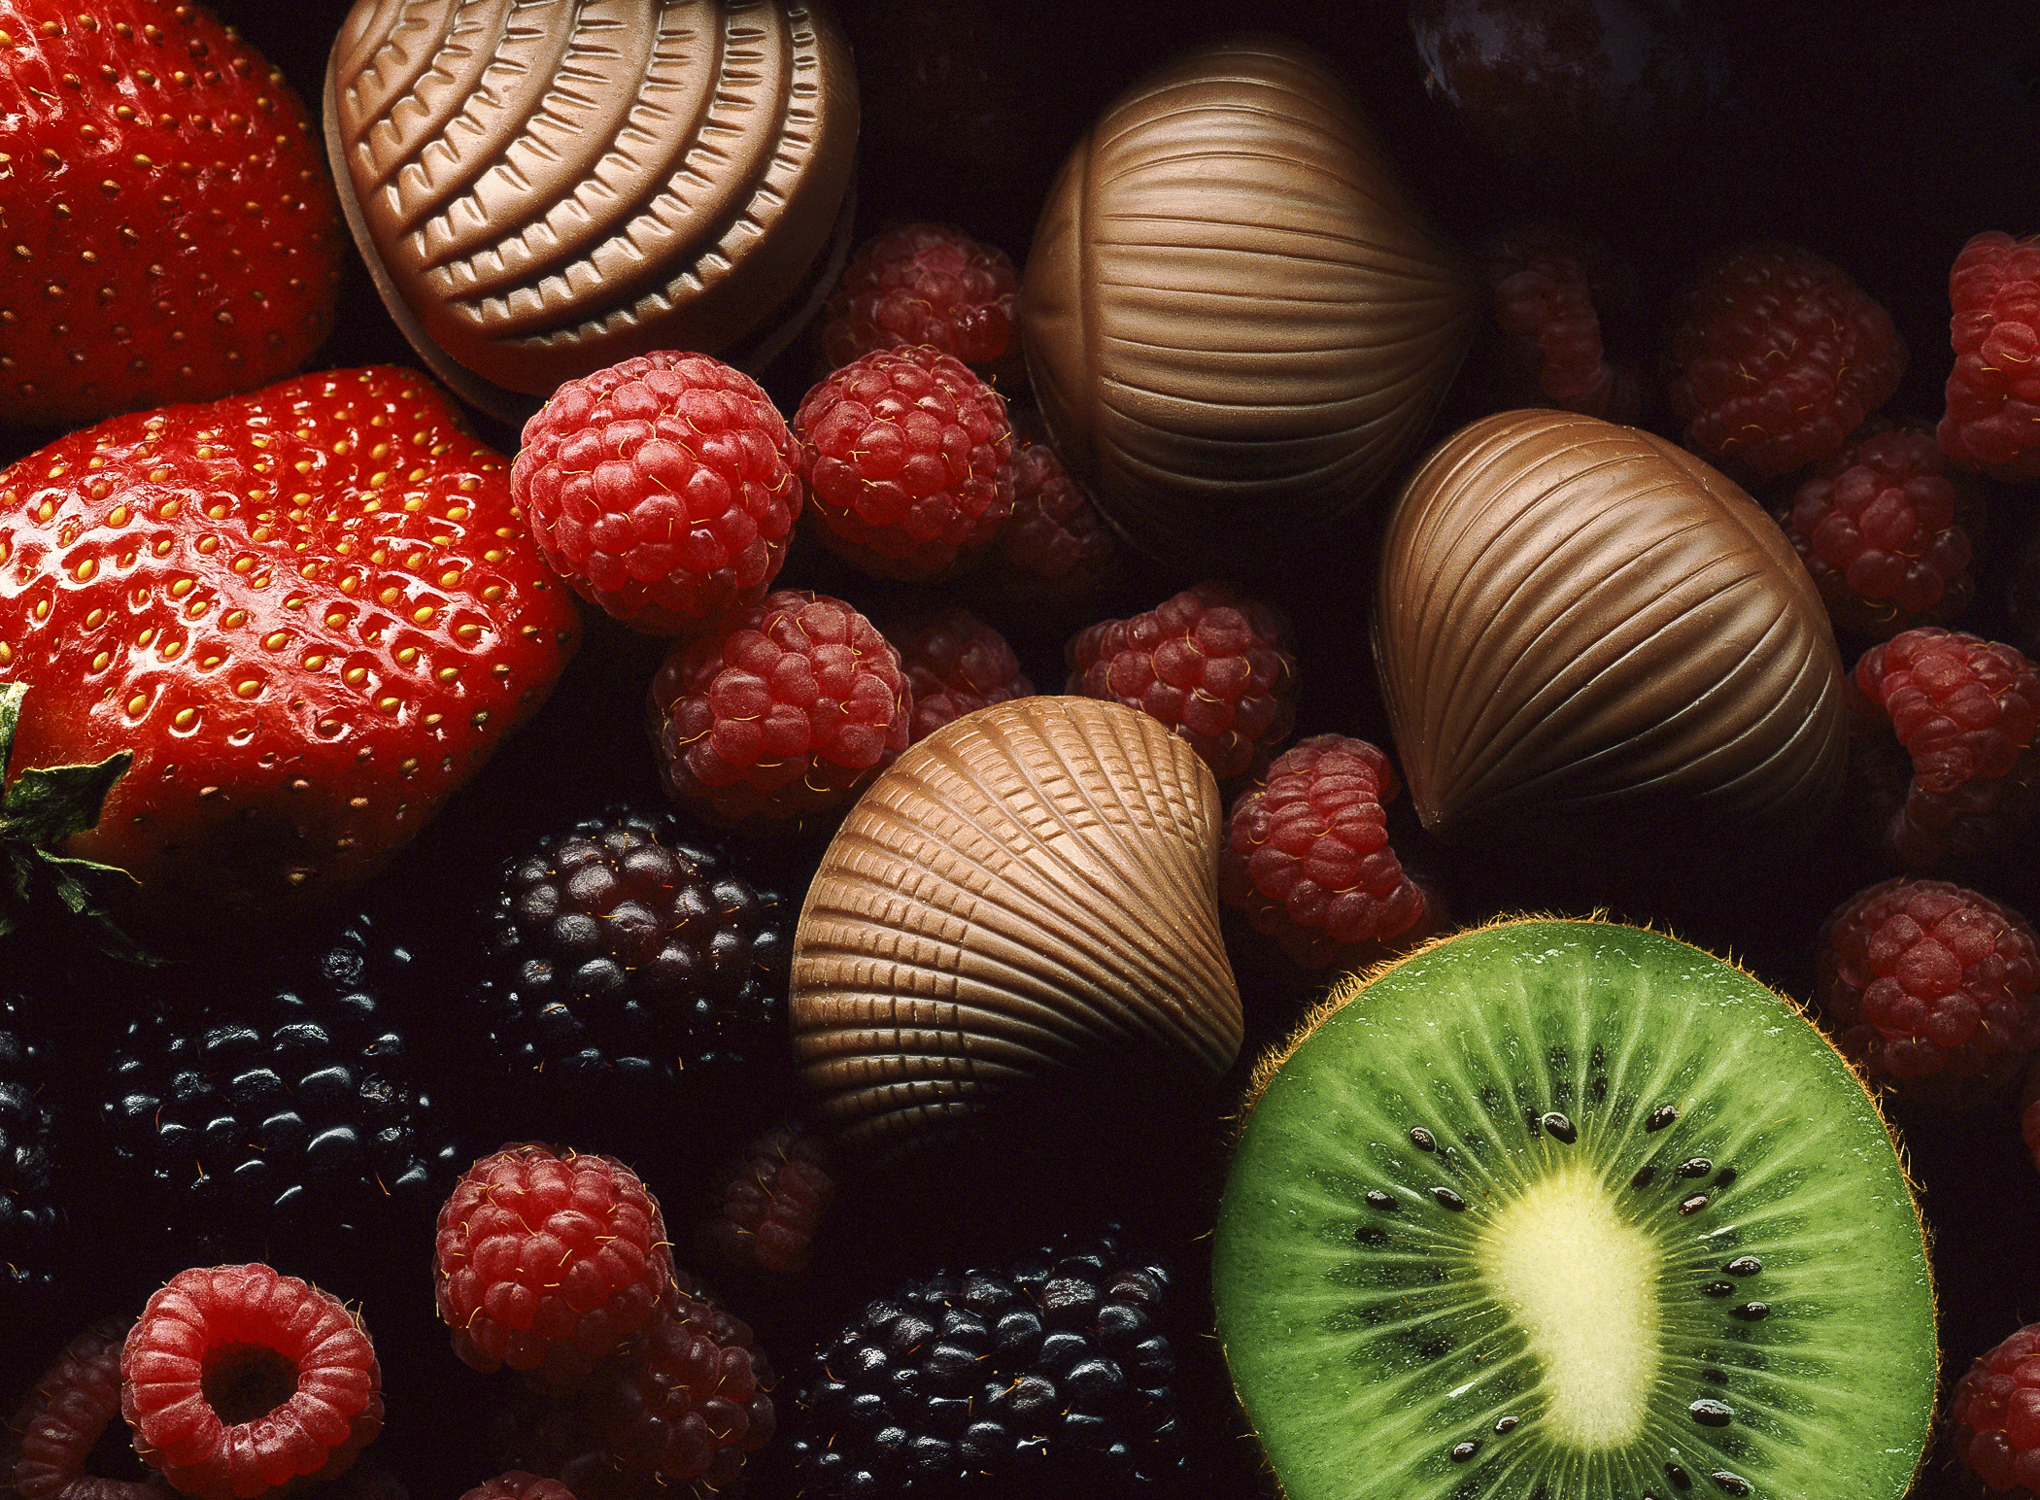 Fruit and Cocolate.jpg